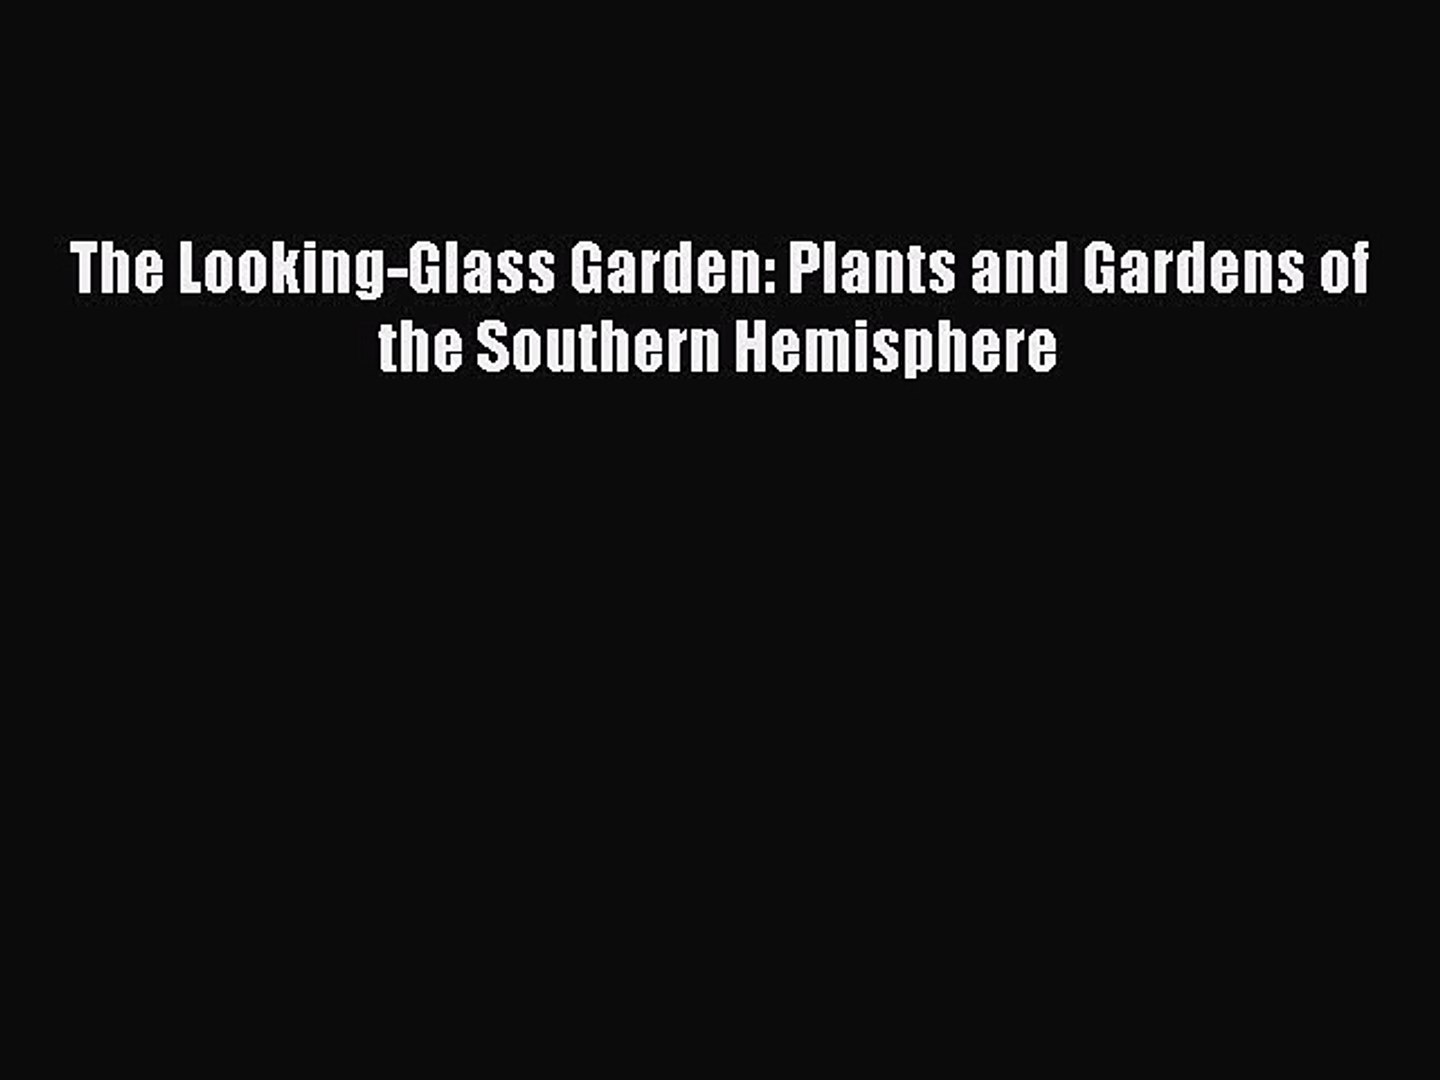 Read The Looking-Glass Garden: Plants and Gardens of the Southern Hemisphere Ebook Free